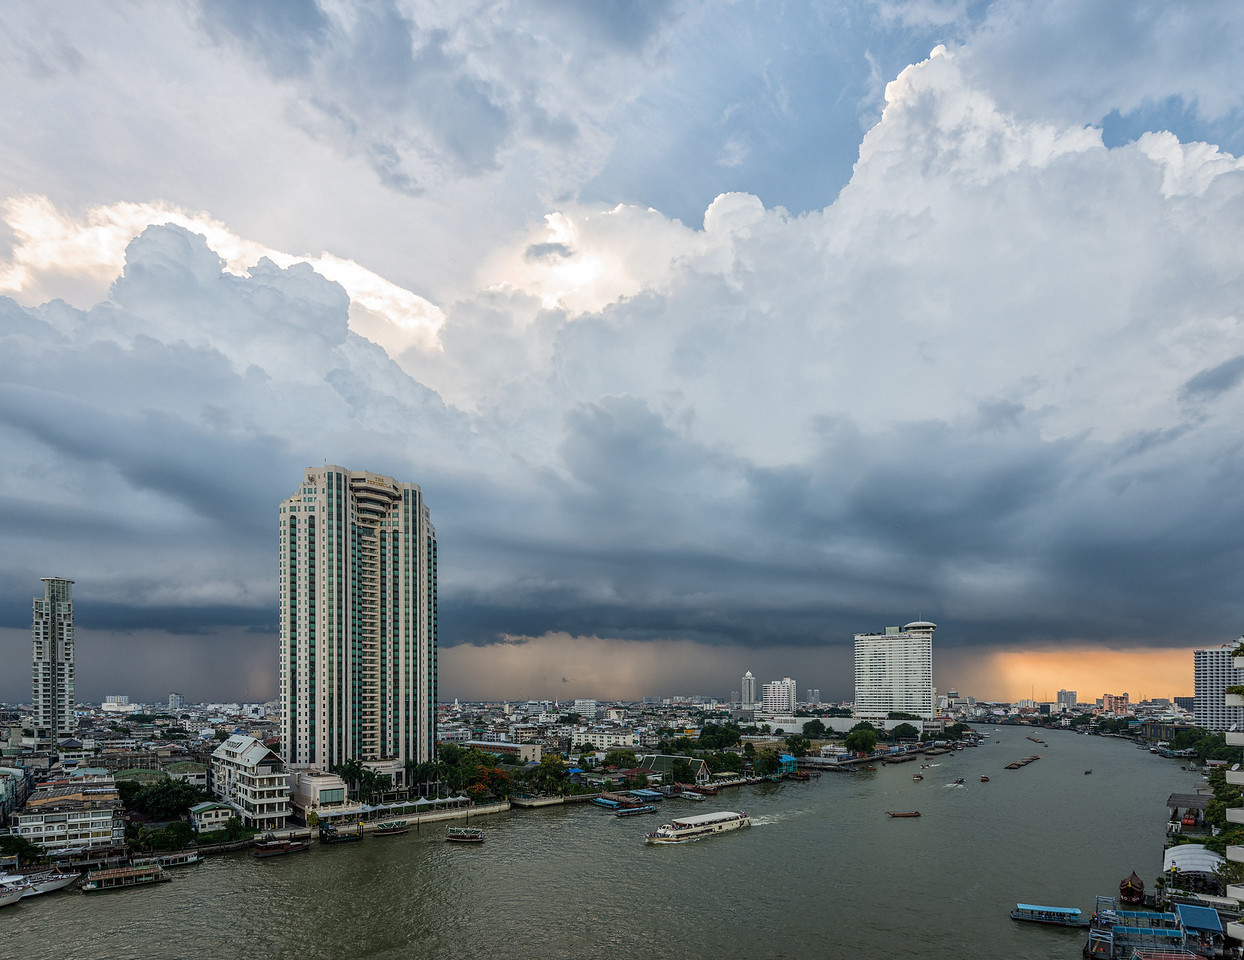 Storm Clouds over the Chao Praya